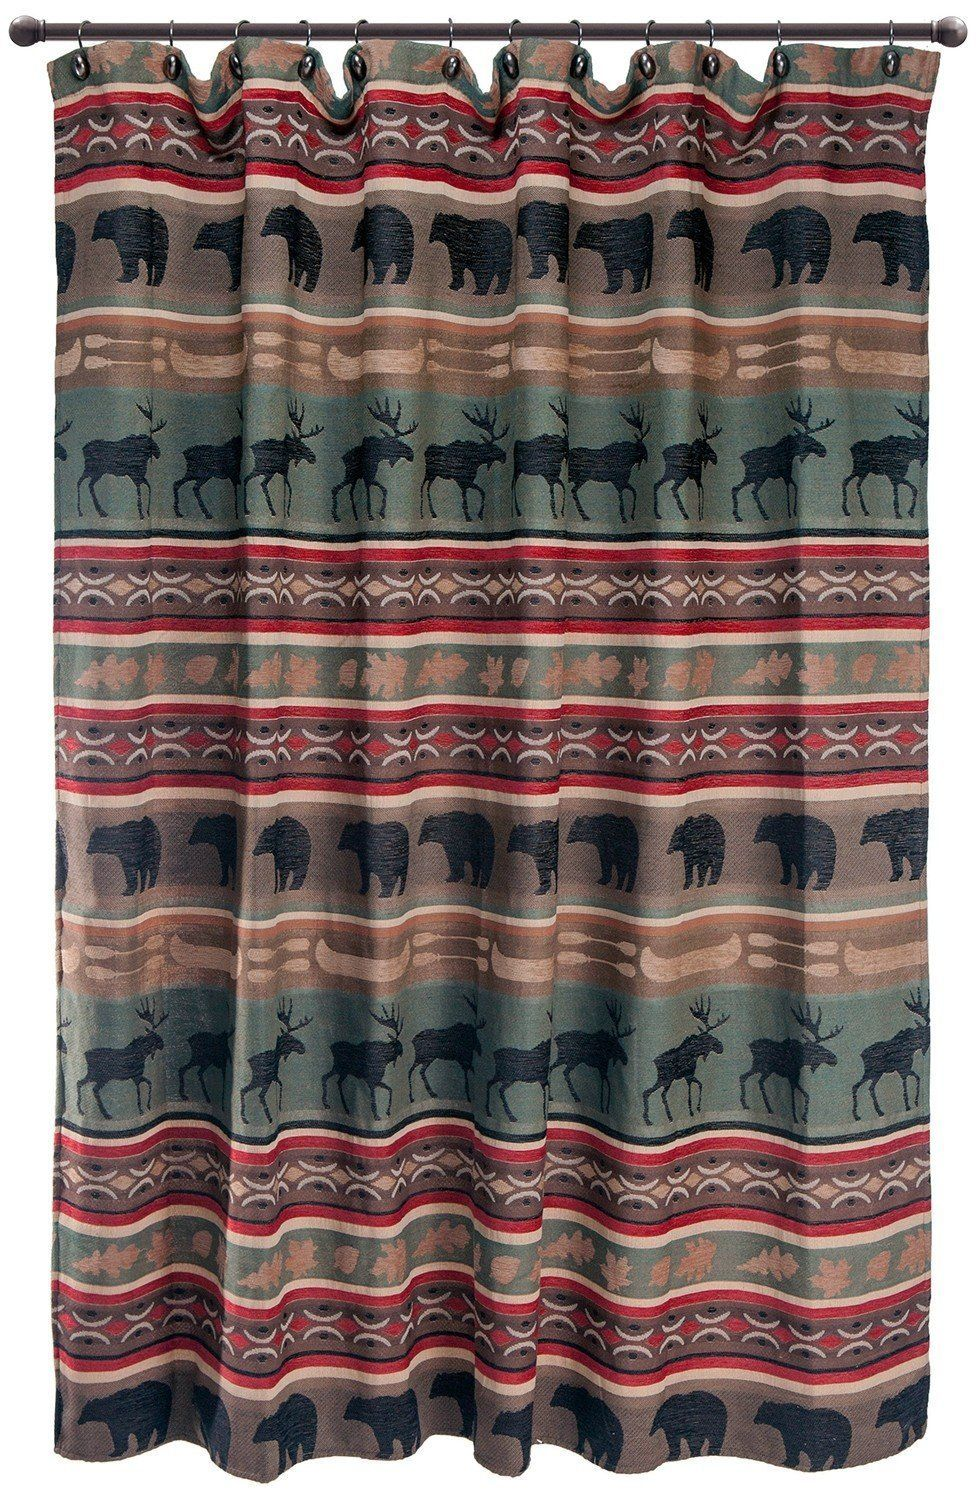 Backwoods Shower Curtain Cabin Shower Curtain Bathroom Red